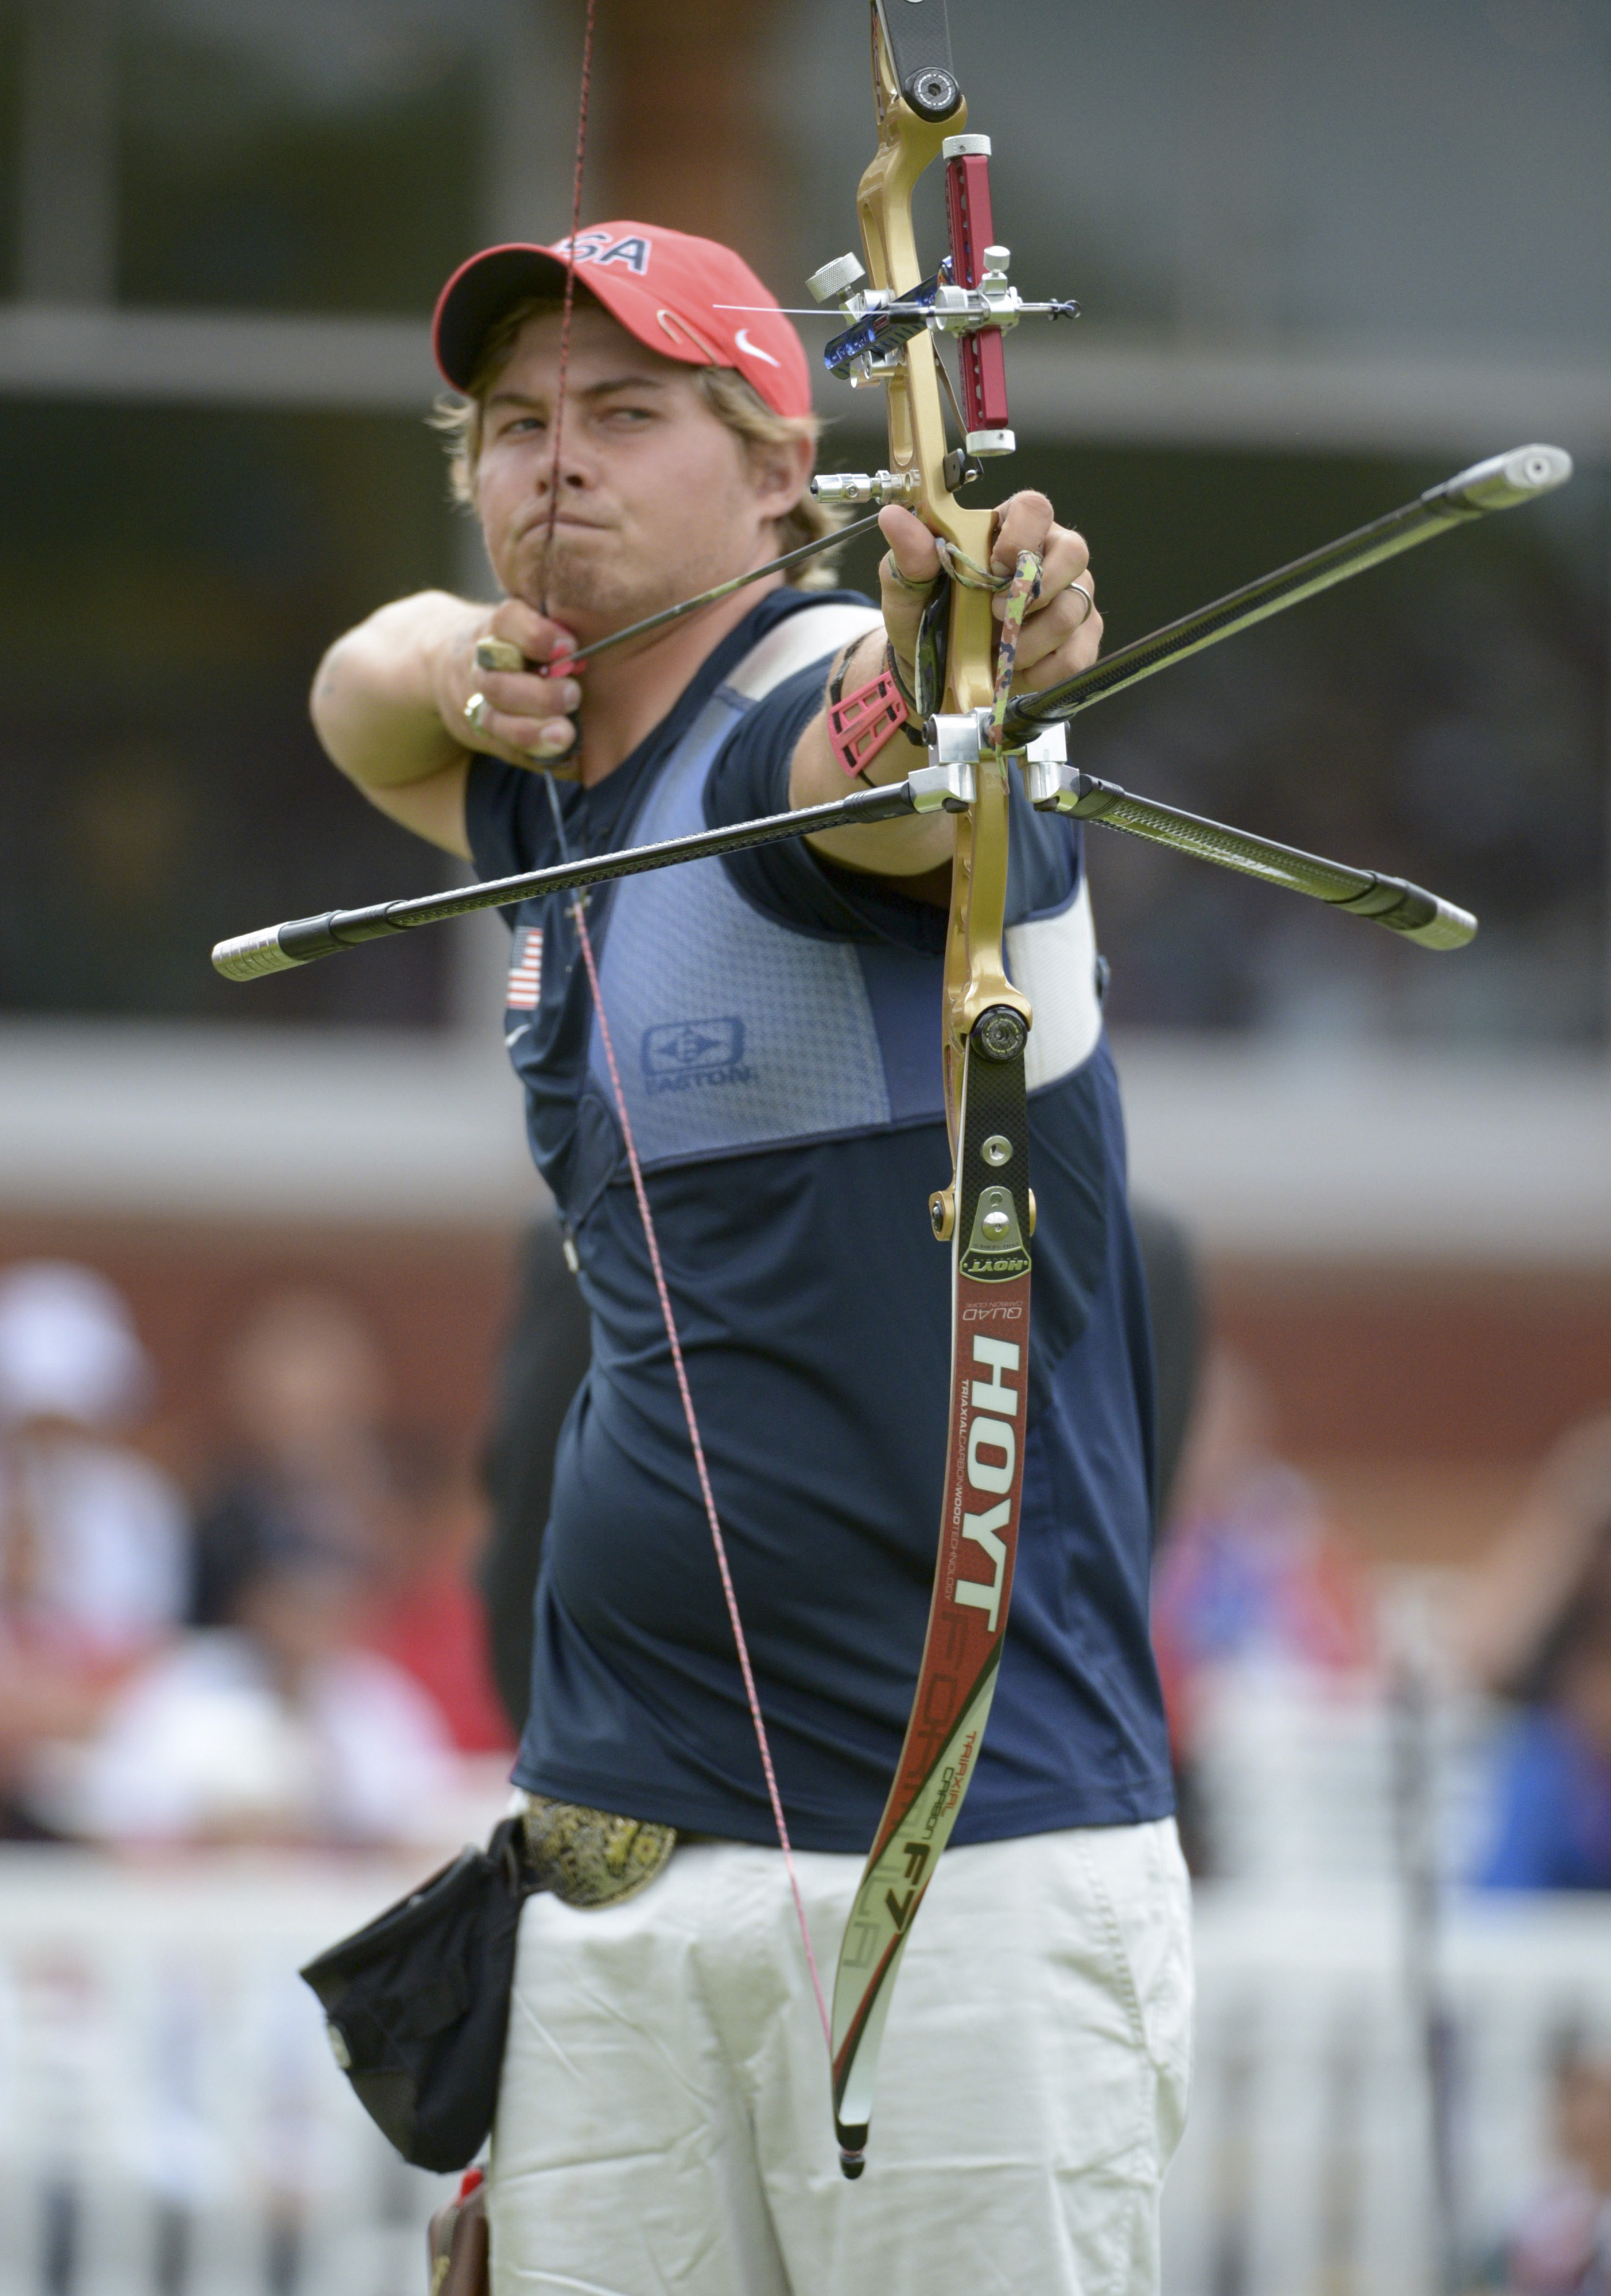 Jul 28, 2012; London, United Kingdom; Brady Ellison of the United States during the mens team archery finals against Italy at Lords Cricket Ground. Mandatory Credit: Kirby Lee-USA TODAY Sports